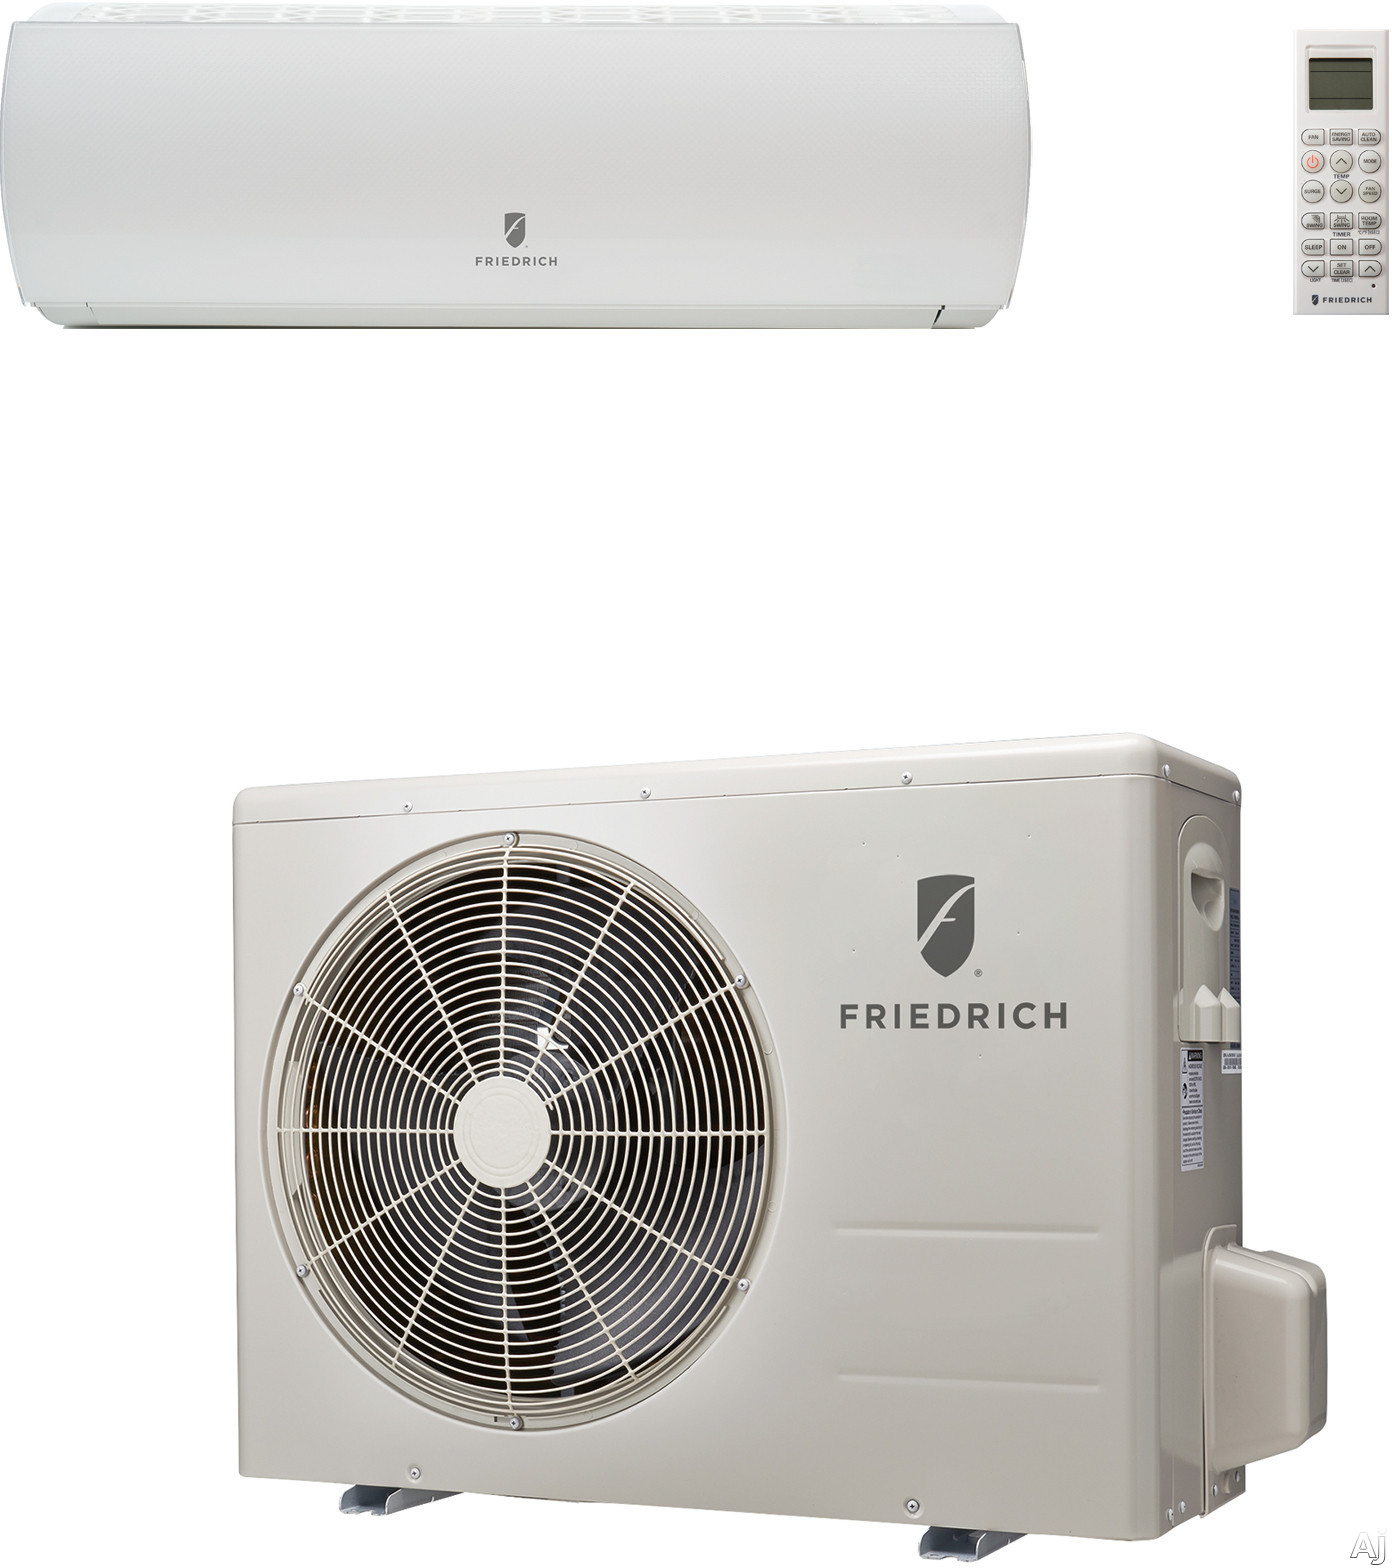 Friedrich HM12YJ 12,000 BTU Single Zone Wall-Mount Ductless Split System with 13,600 BTU Heat Pump, 14.0 EER, 25.0 SEER and R410A Refrigerant (MWH12Y3J Indoor/MRH12Y3J Outdoor)